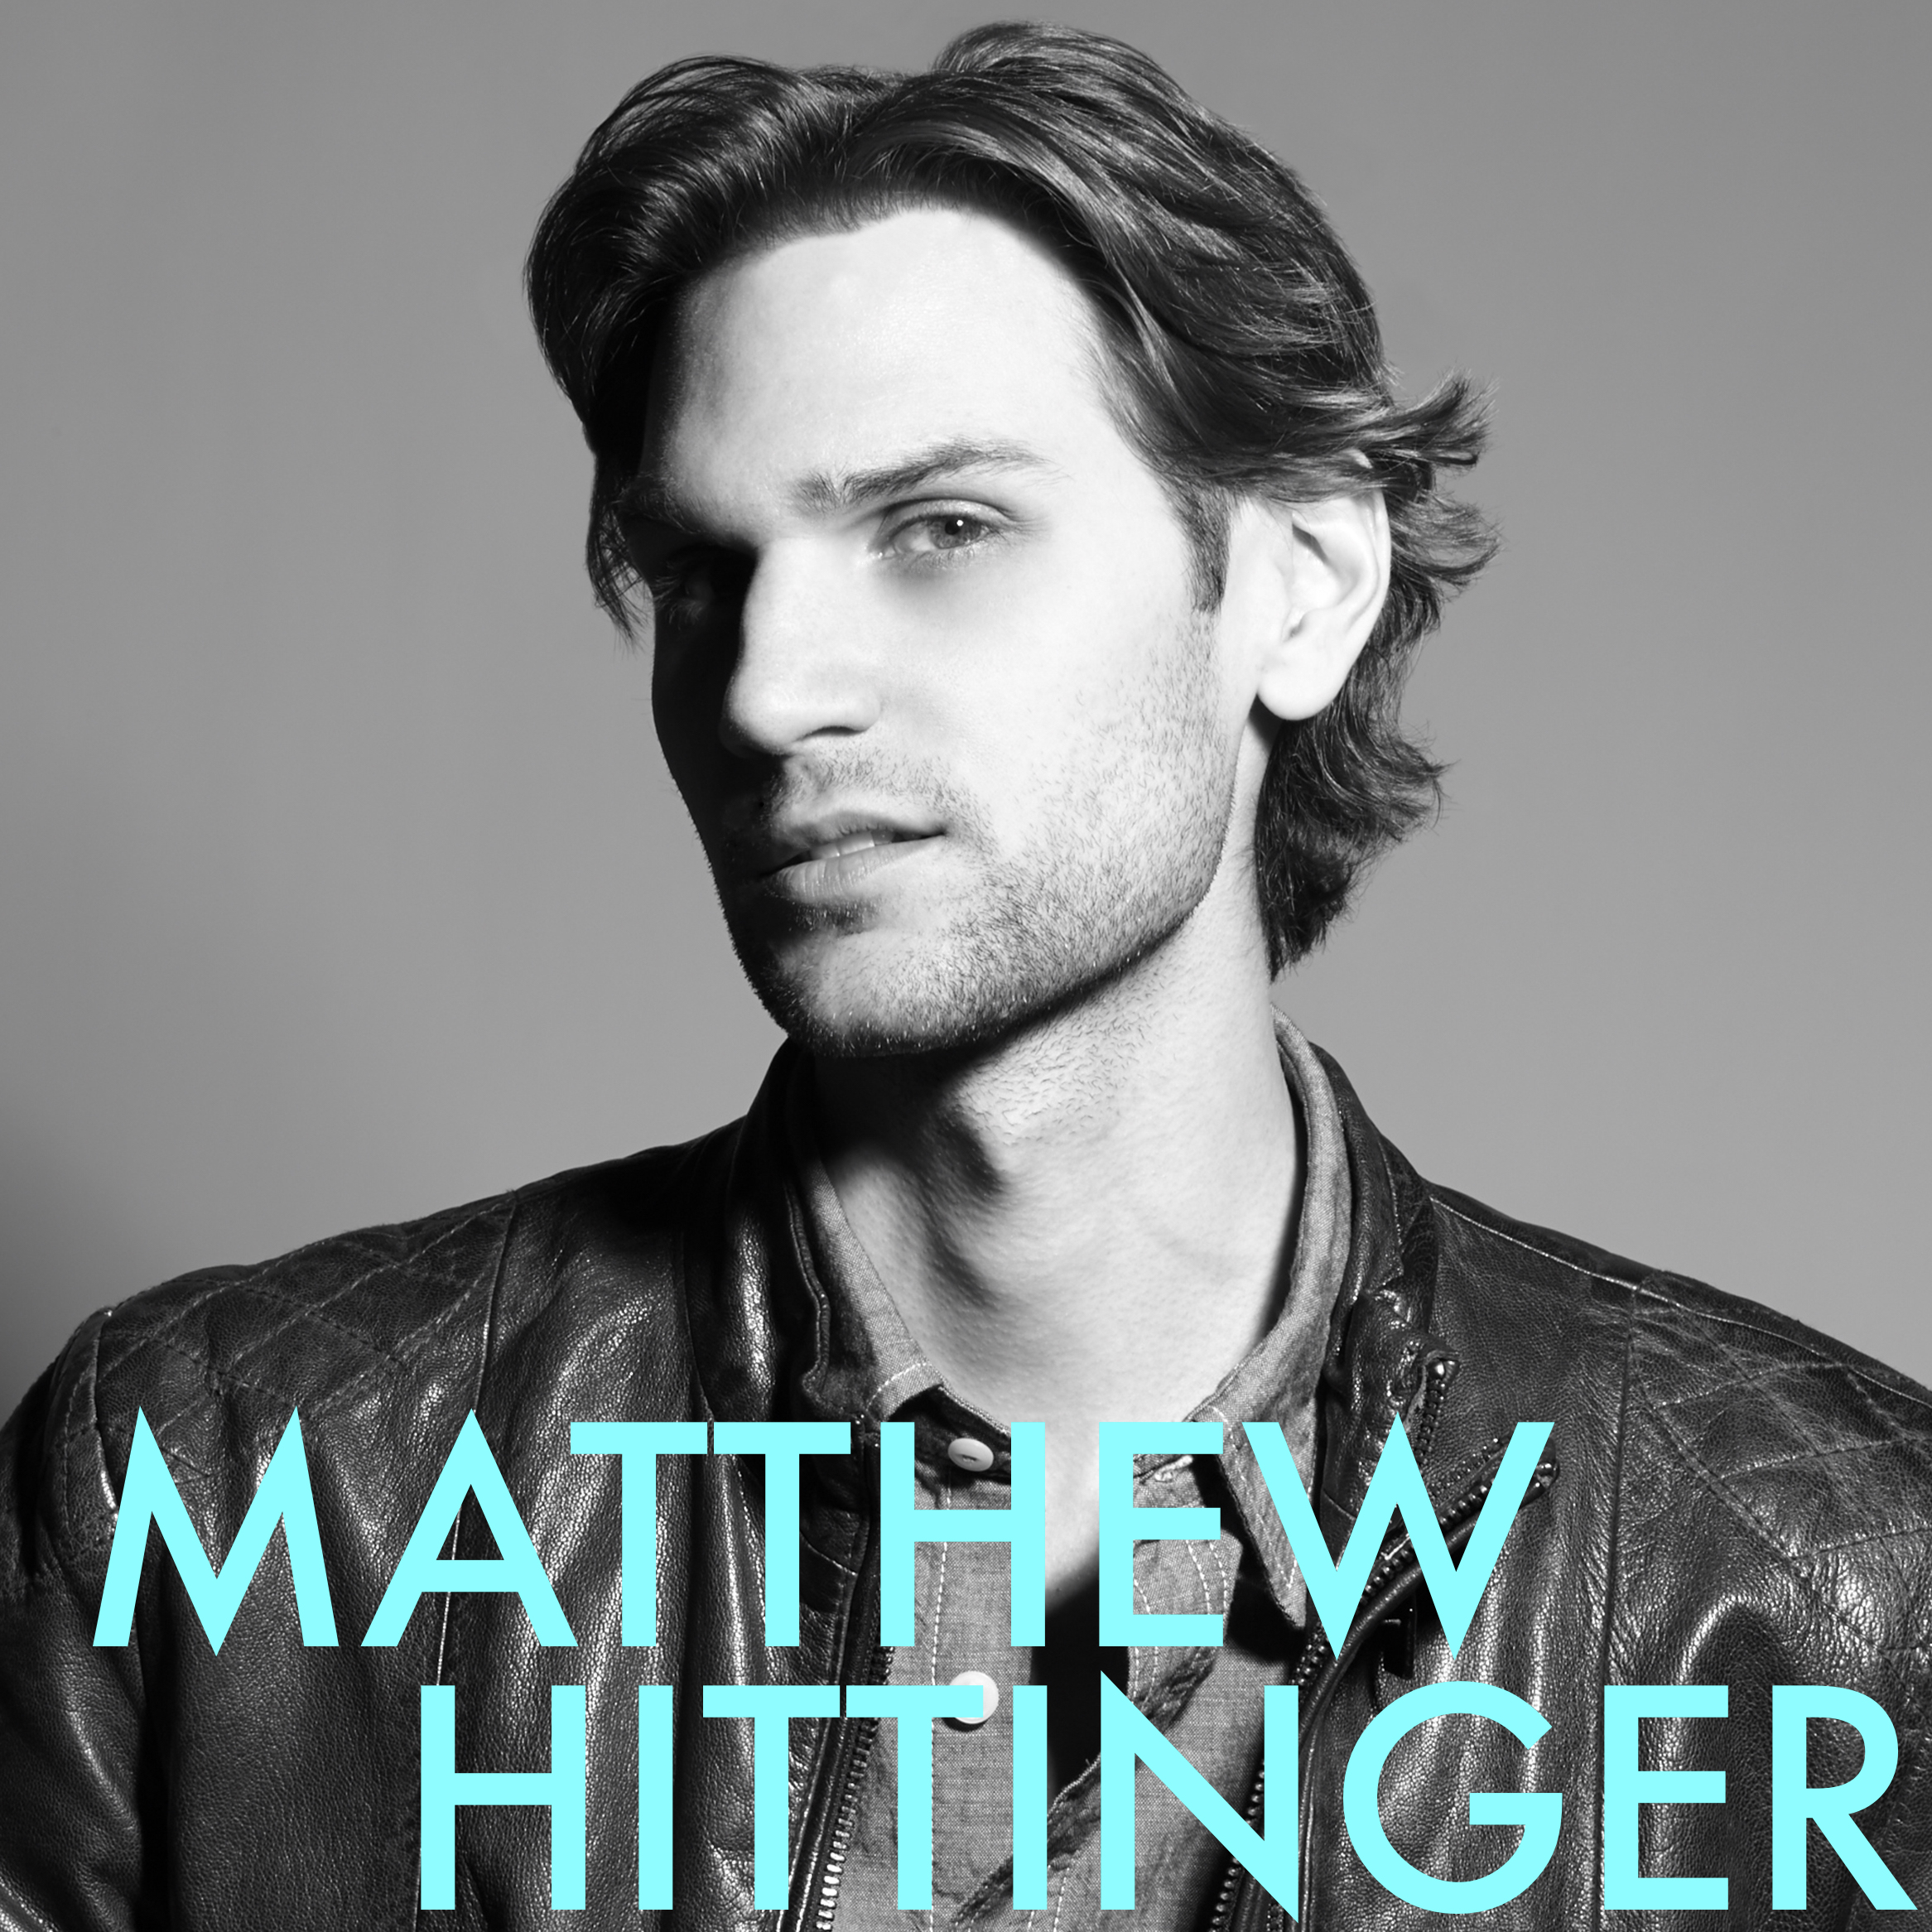 Matthew Hittinger headshot.jpg